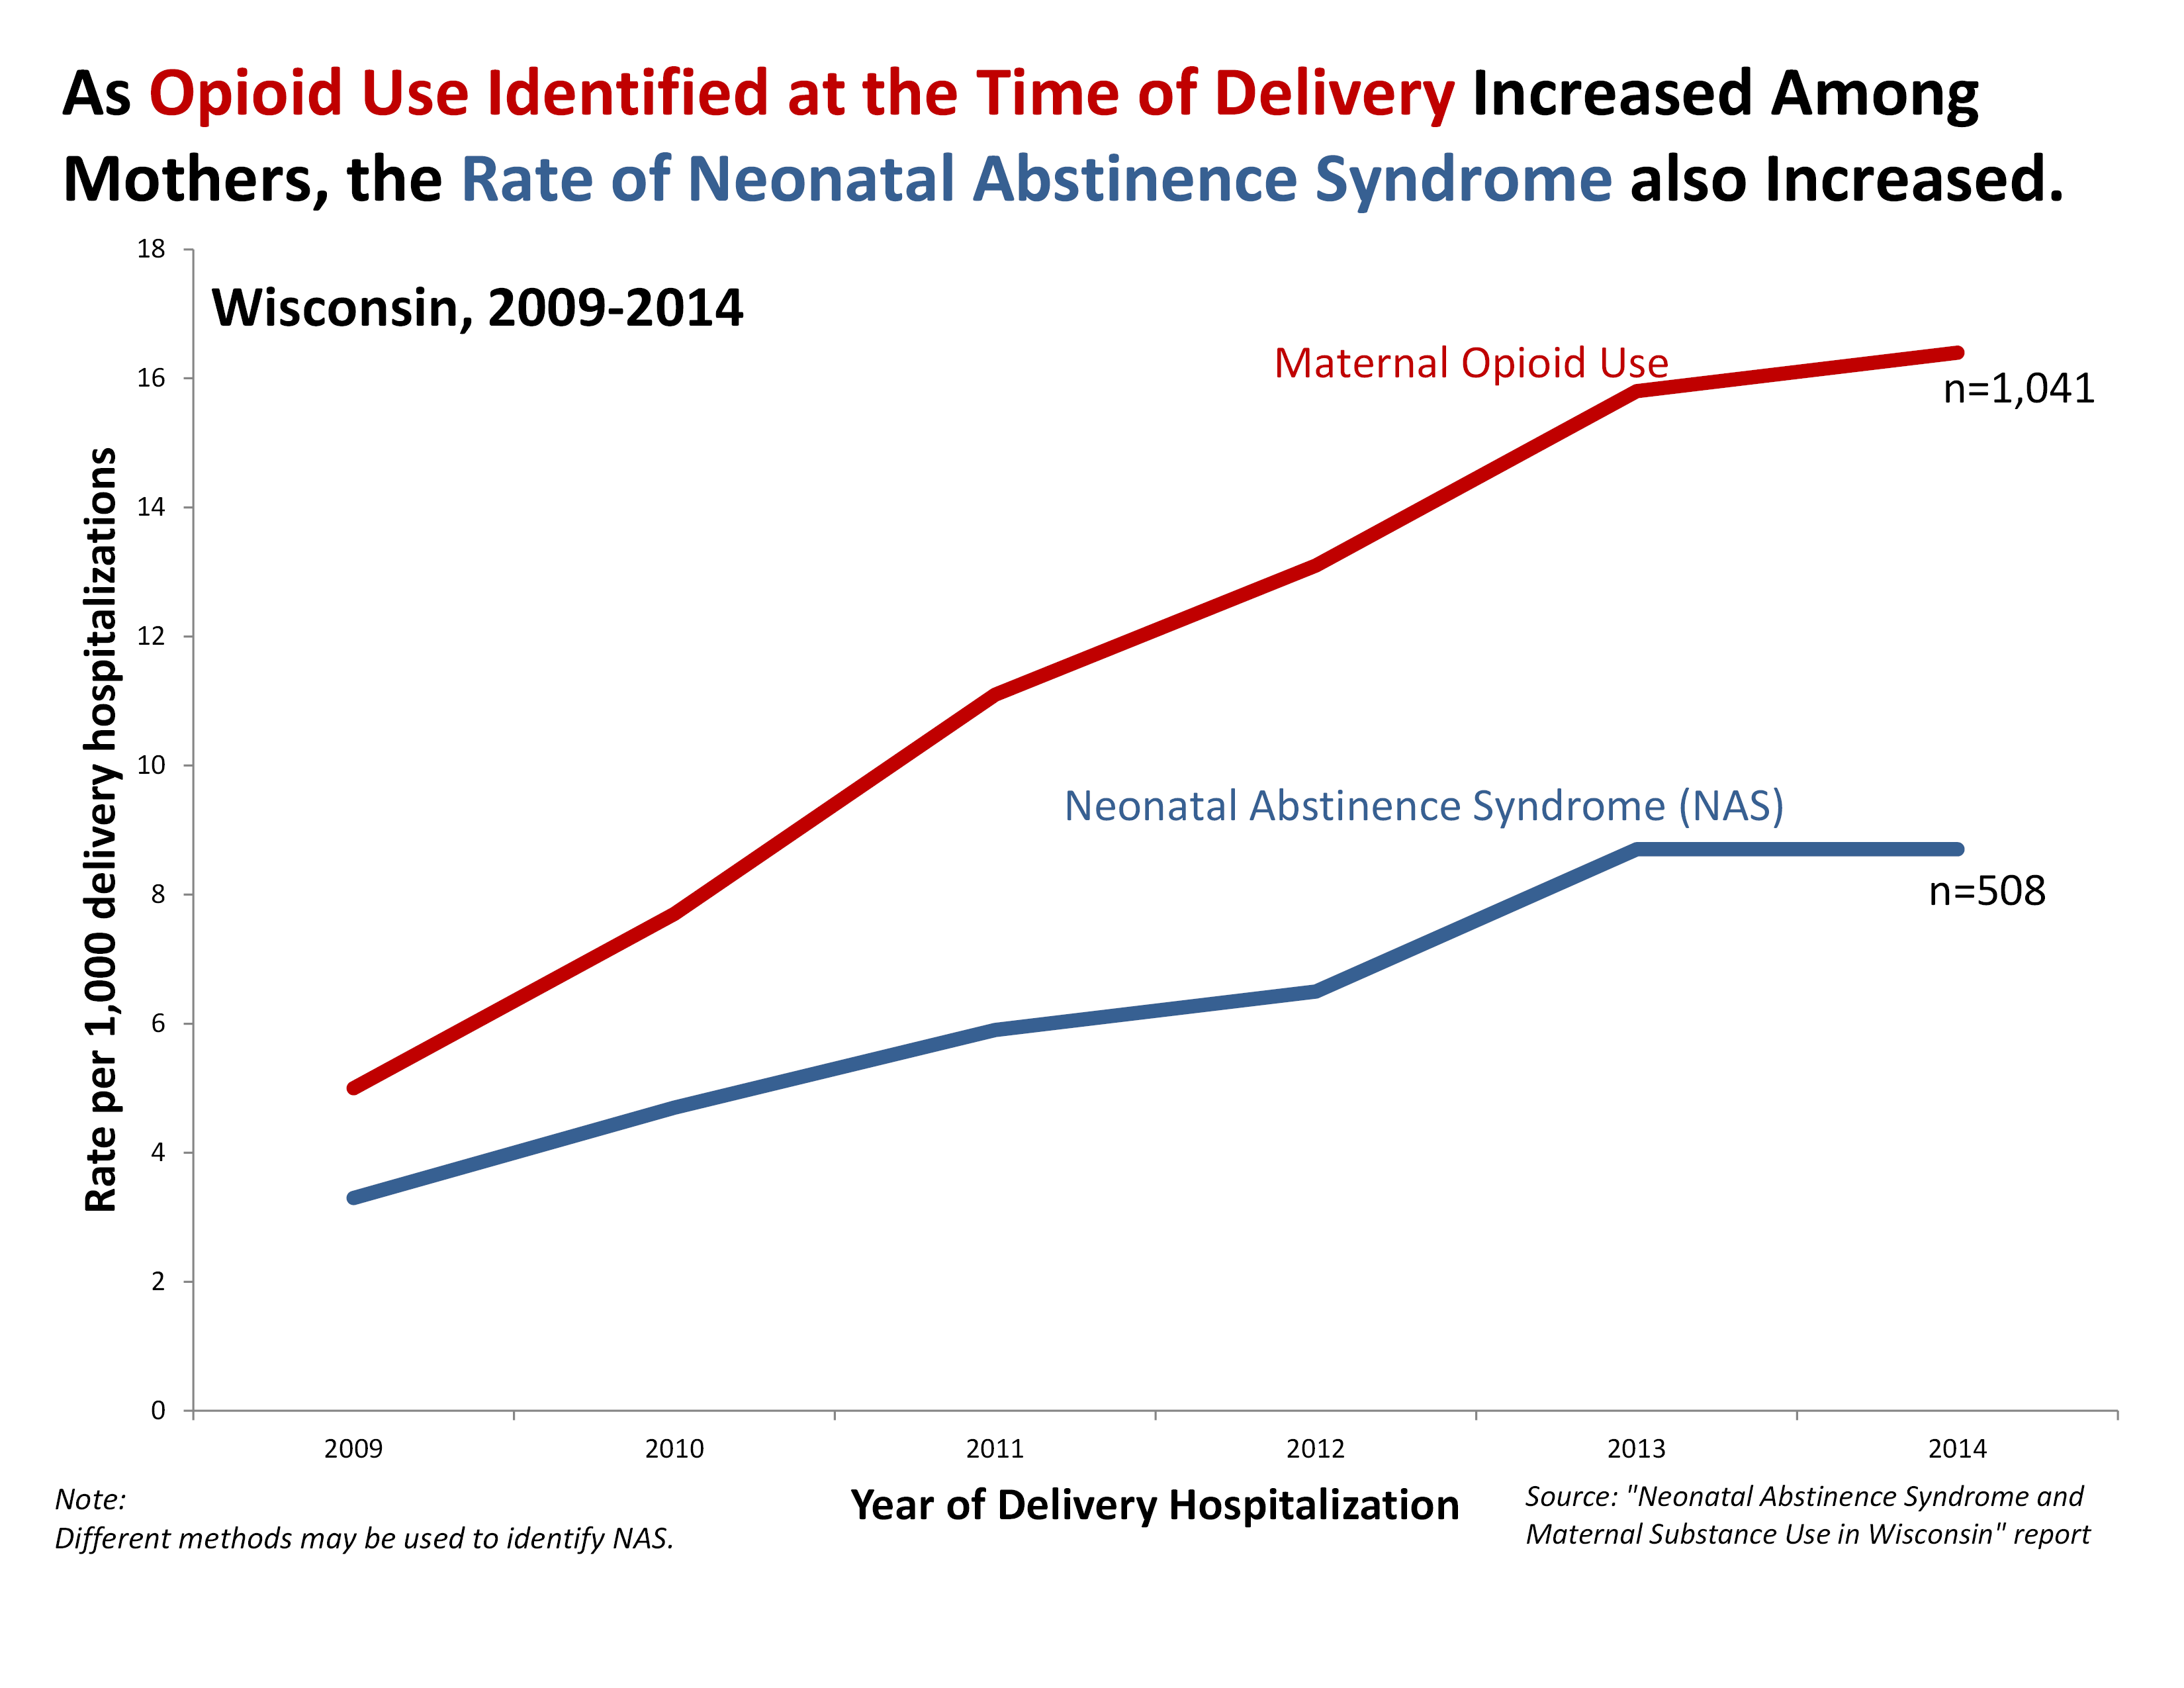 Maternal opioids use has increased